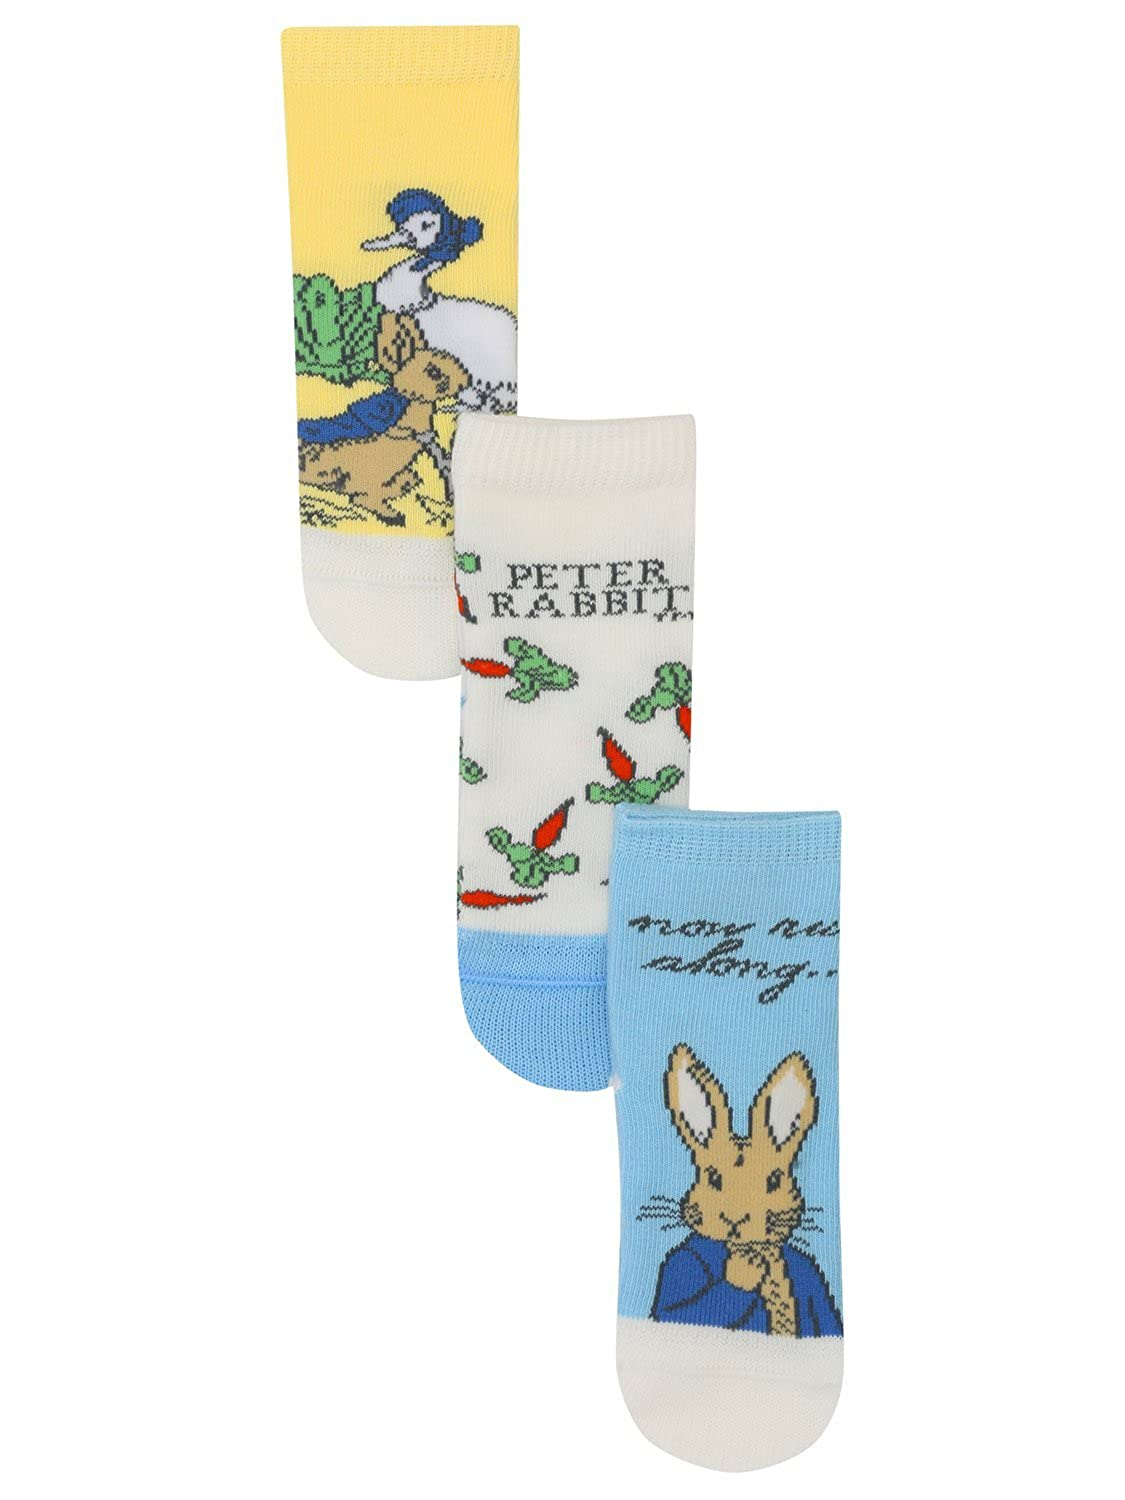 M& Co Peter Rabbit Baby Unisex Character Design Cotton Stretch Ankle Socks Three Pack